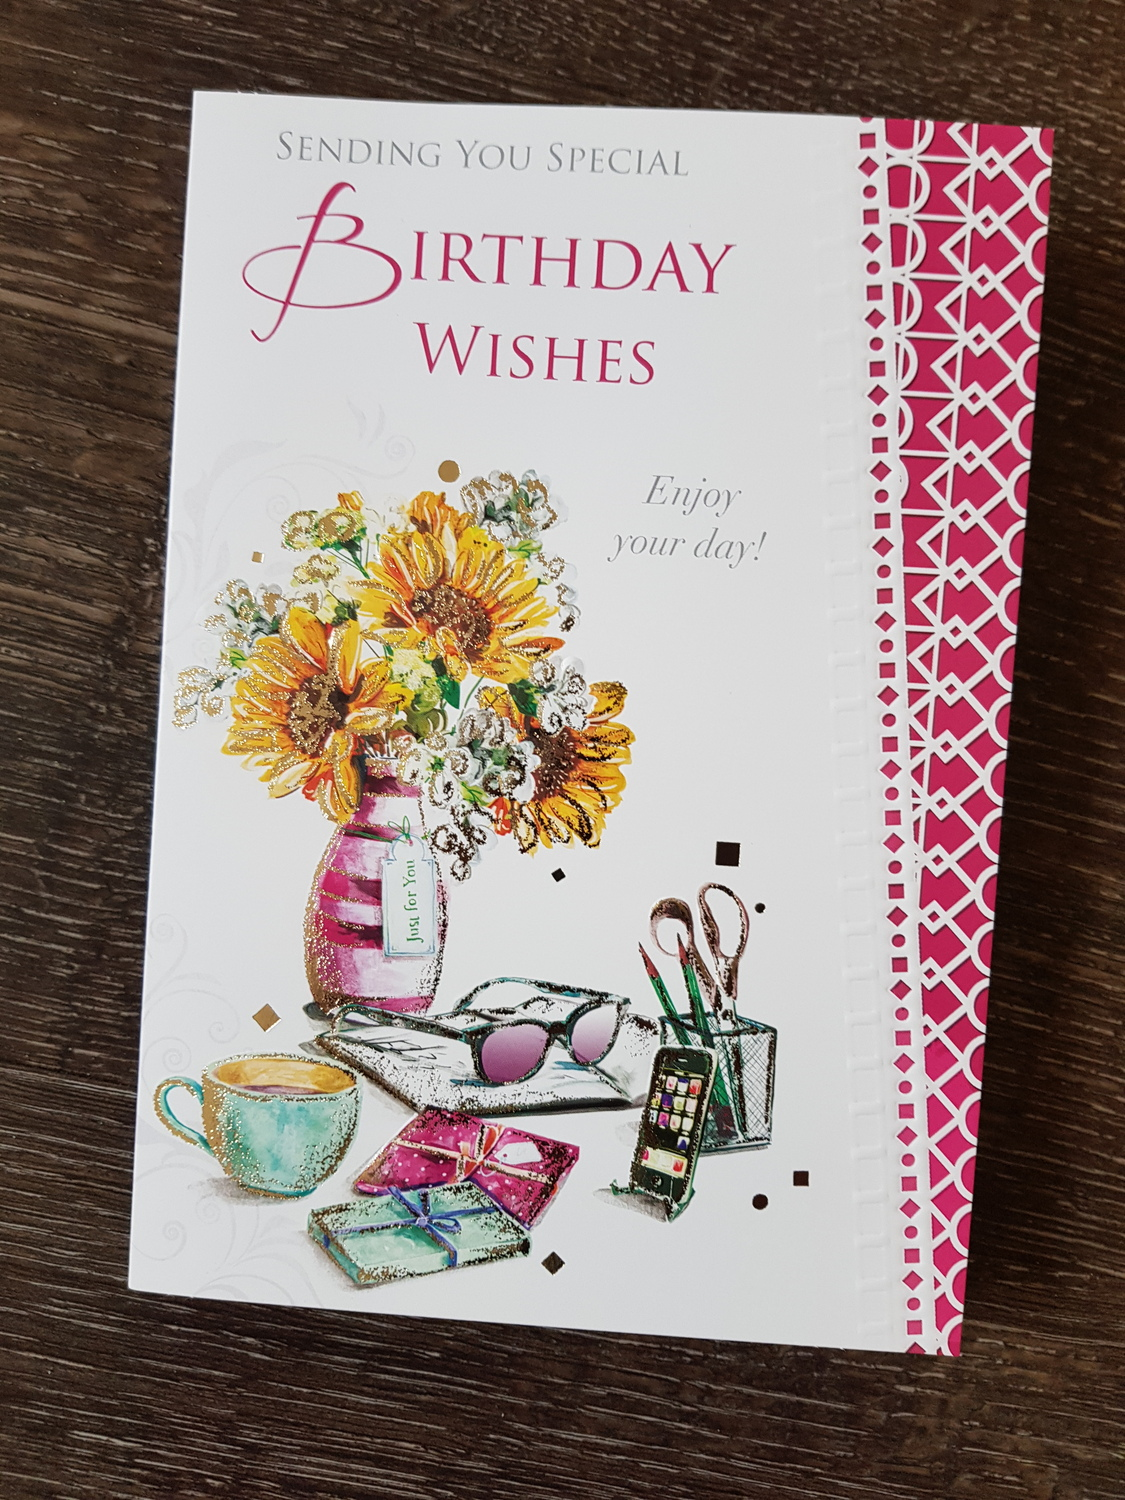 Birthday wishes flowers cup card remember that card greeting birthday wishes flowers cup card izmirmasajfo Choice Image